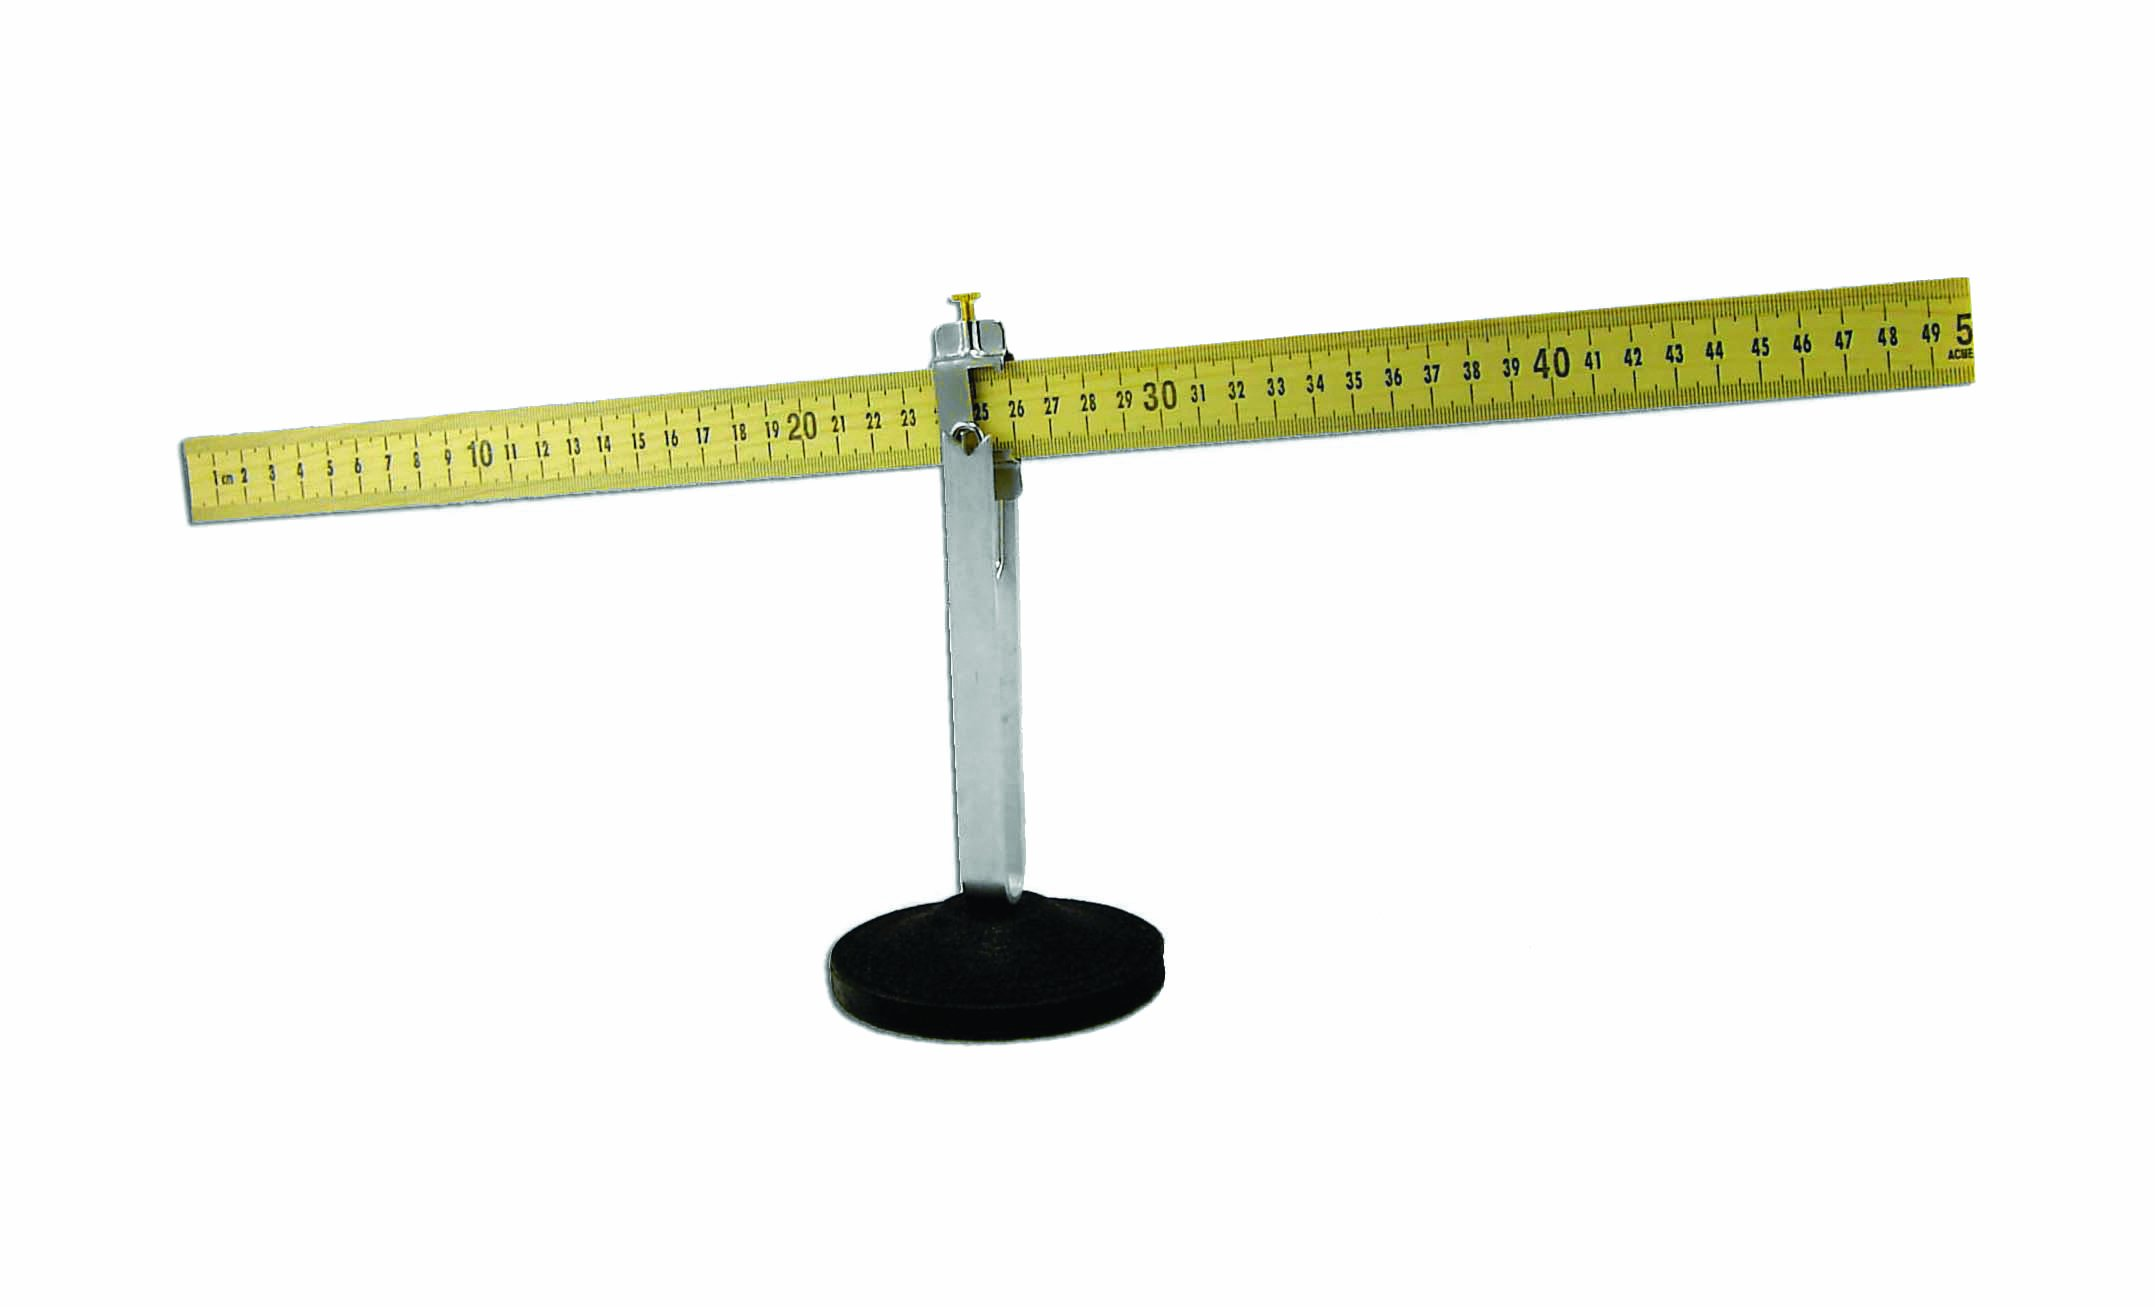 American Educational Balance Demonstration Stand, 19-1/2'' Length x 3-3/4'' Width x 6-1/2'' Height